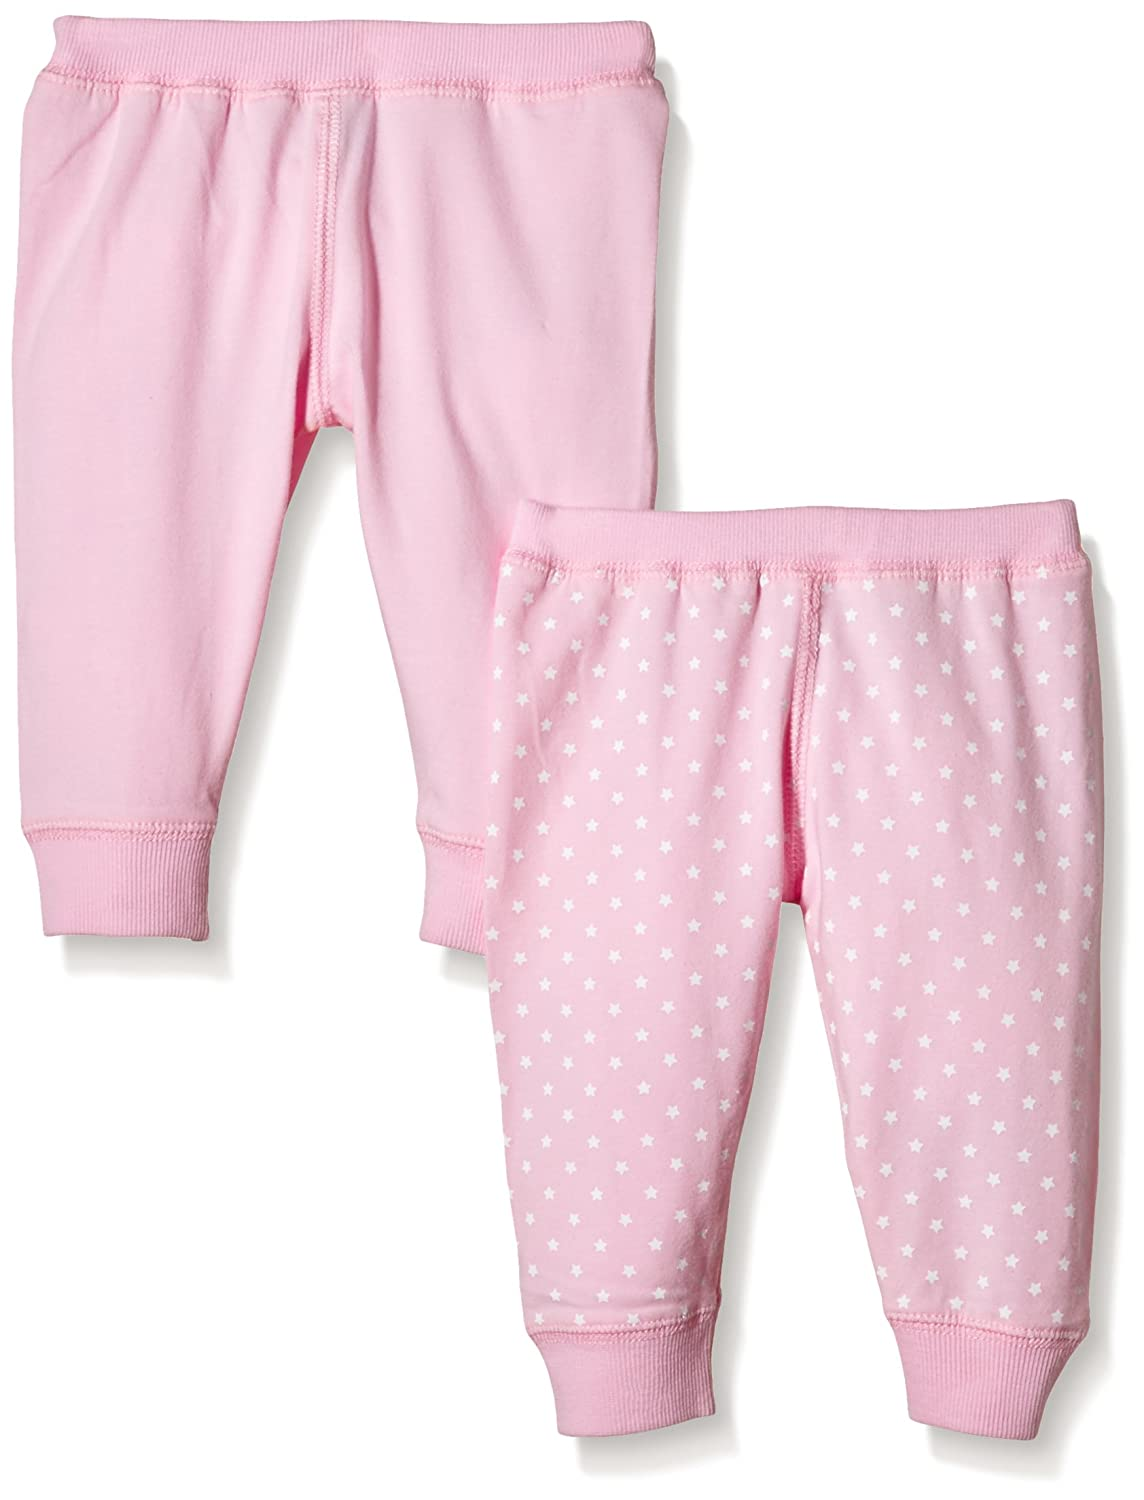 Care Baby Girls' Stars/Uni Trousers, Organic Cotton (Pack of 2) 550025